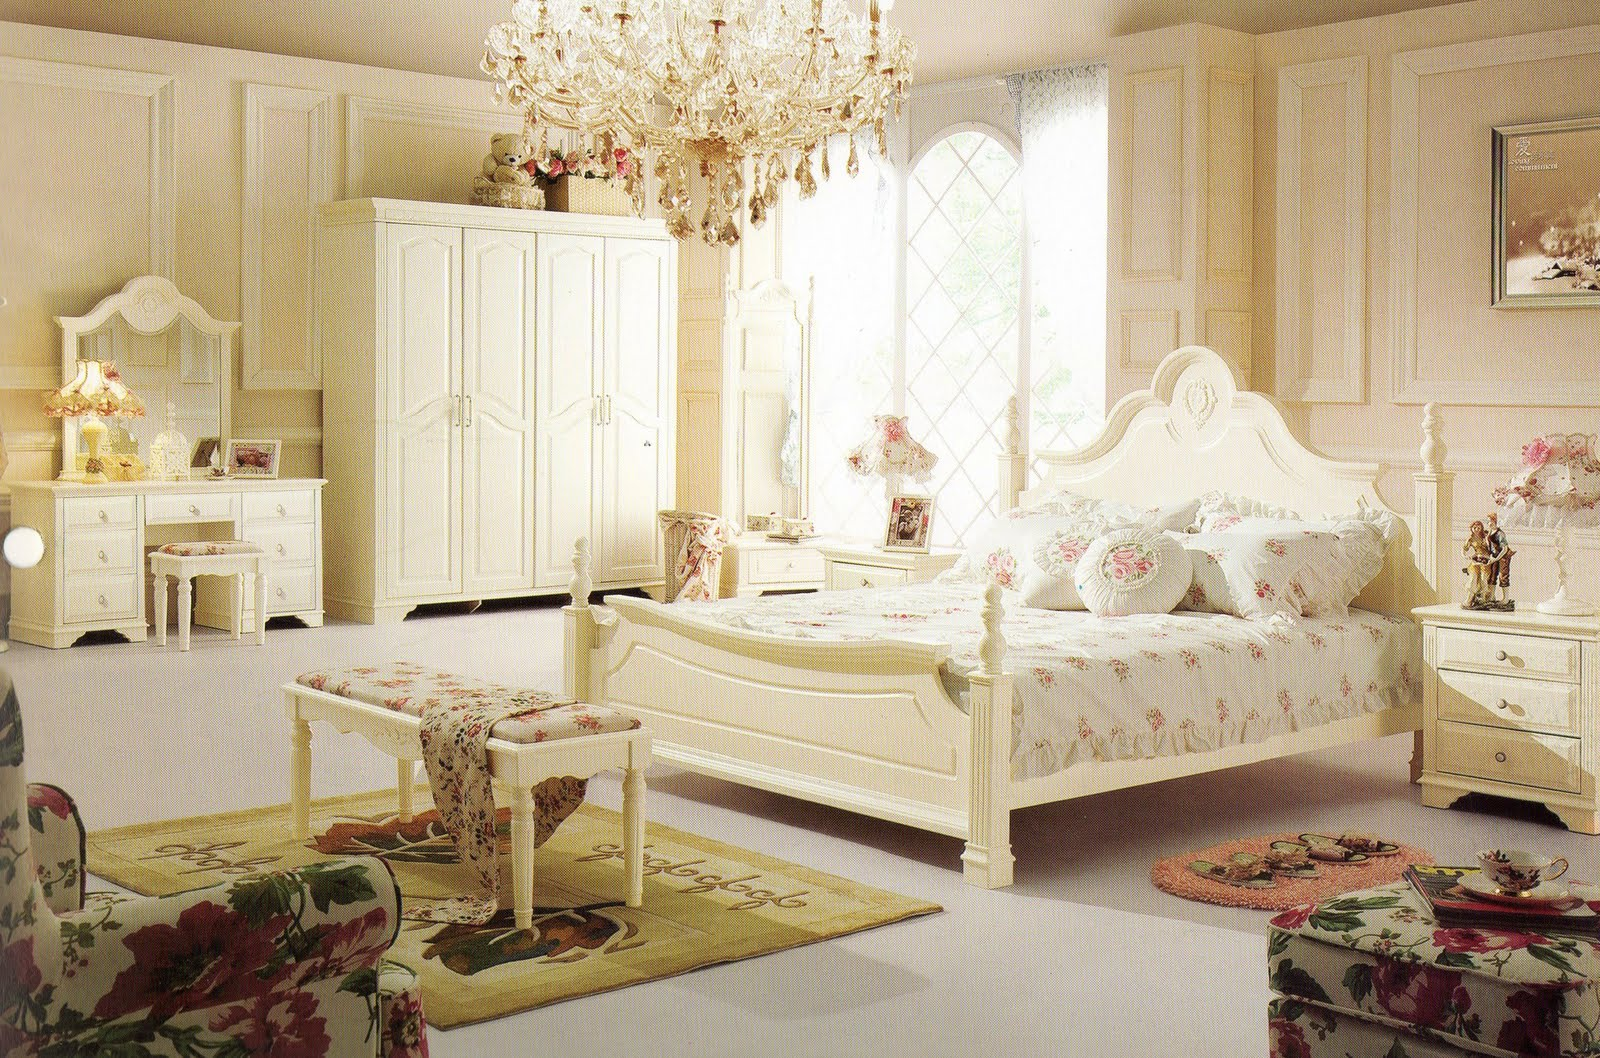 28+ [ French Bedroom ] | Gallery For Gt French Bedroom,French ...